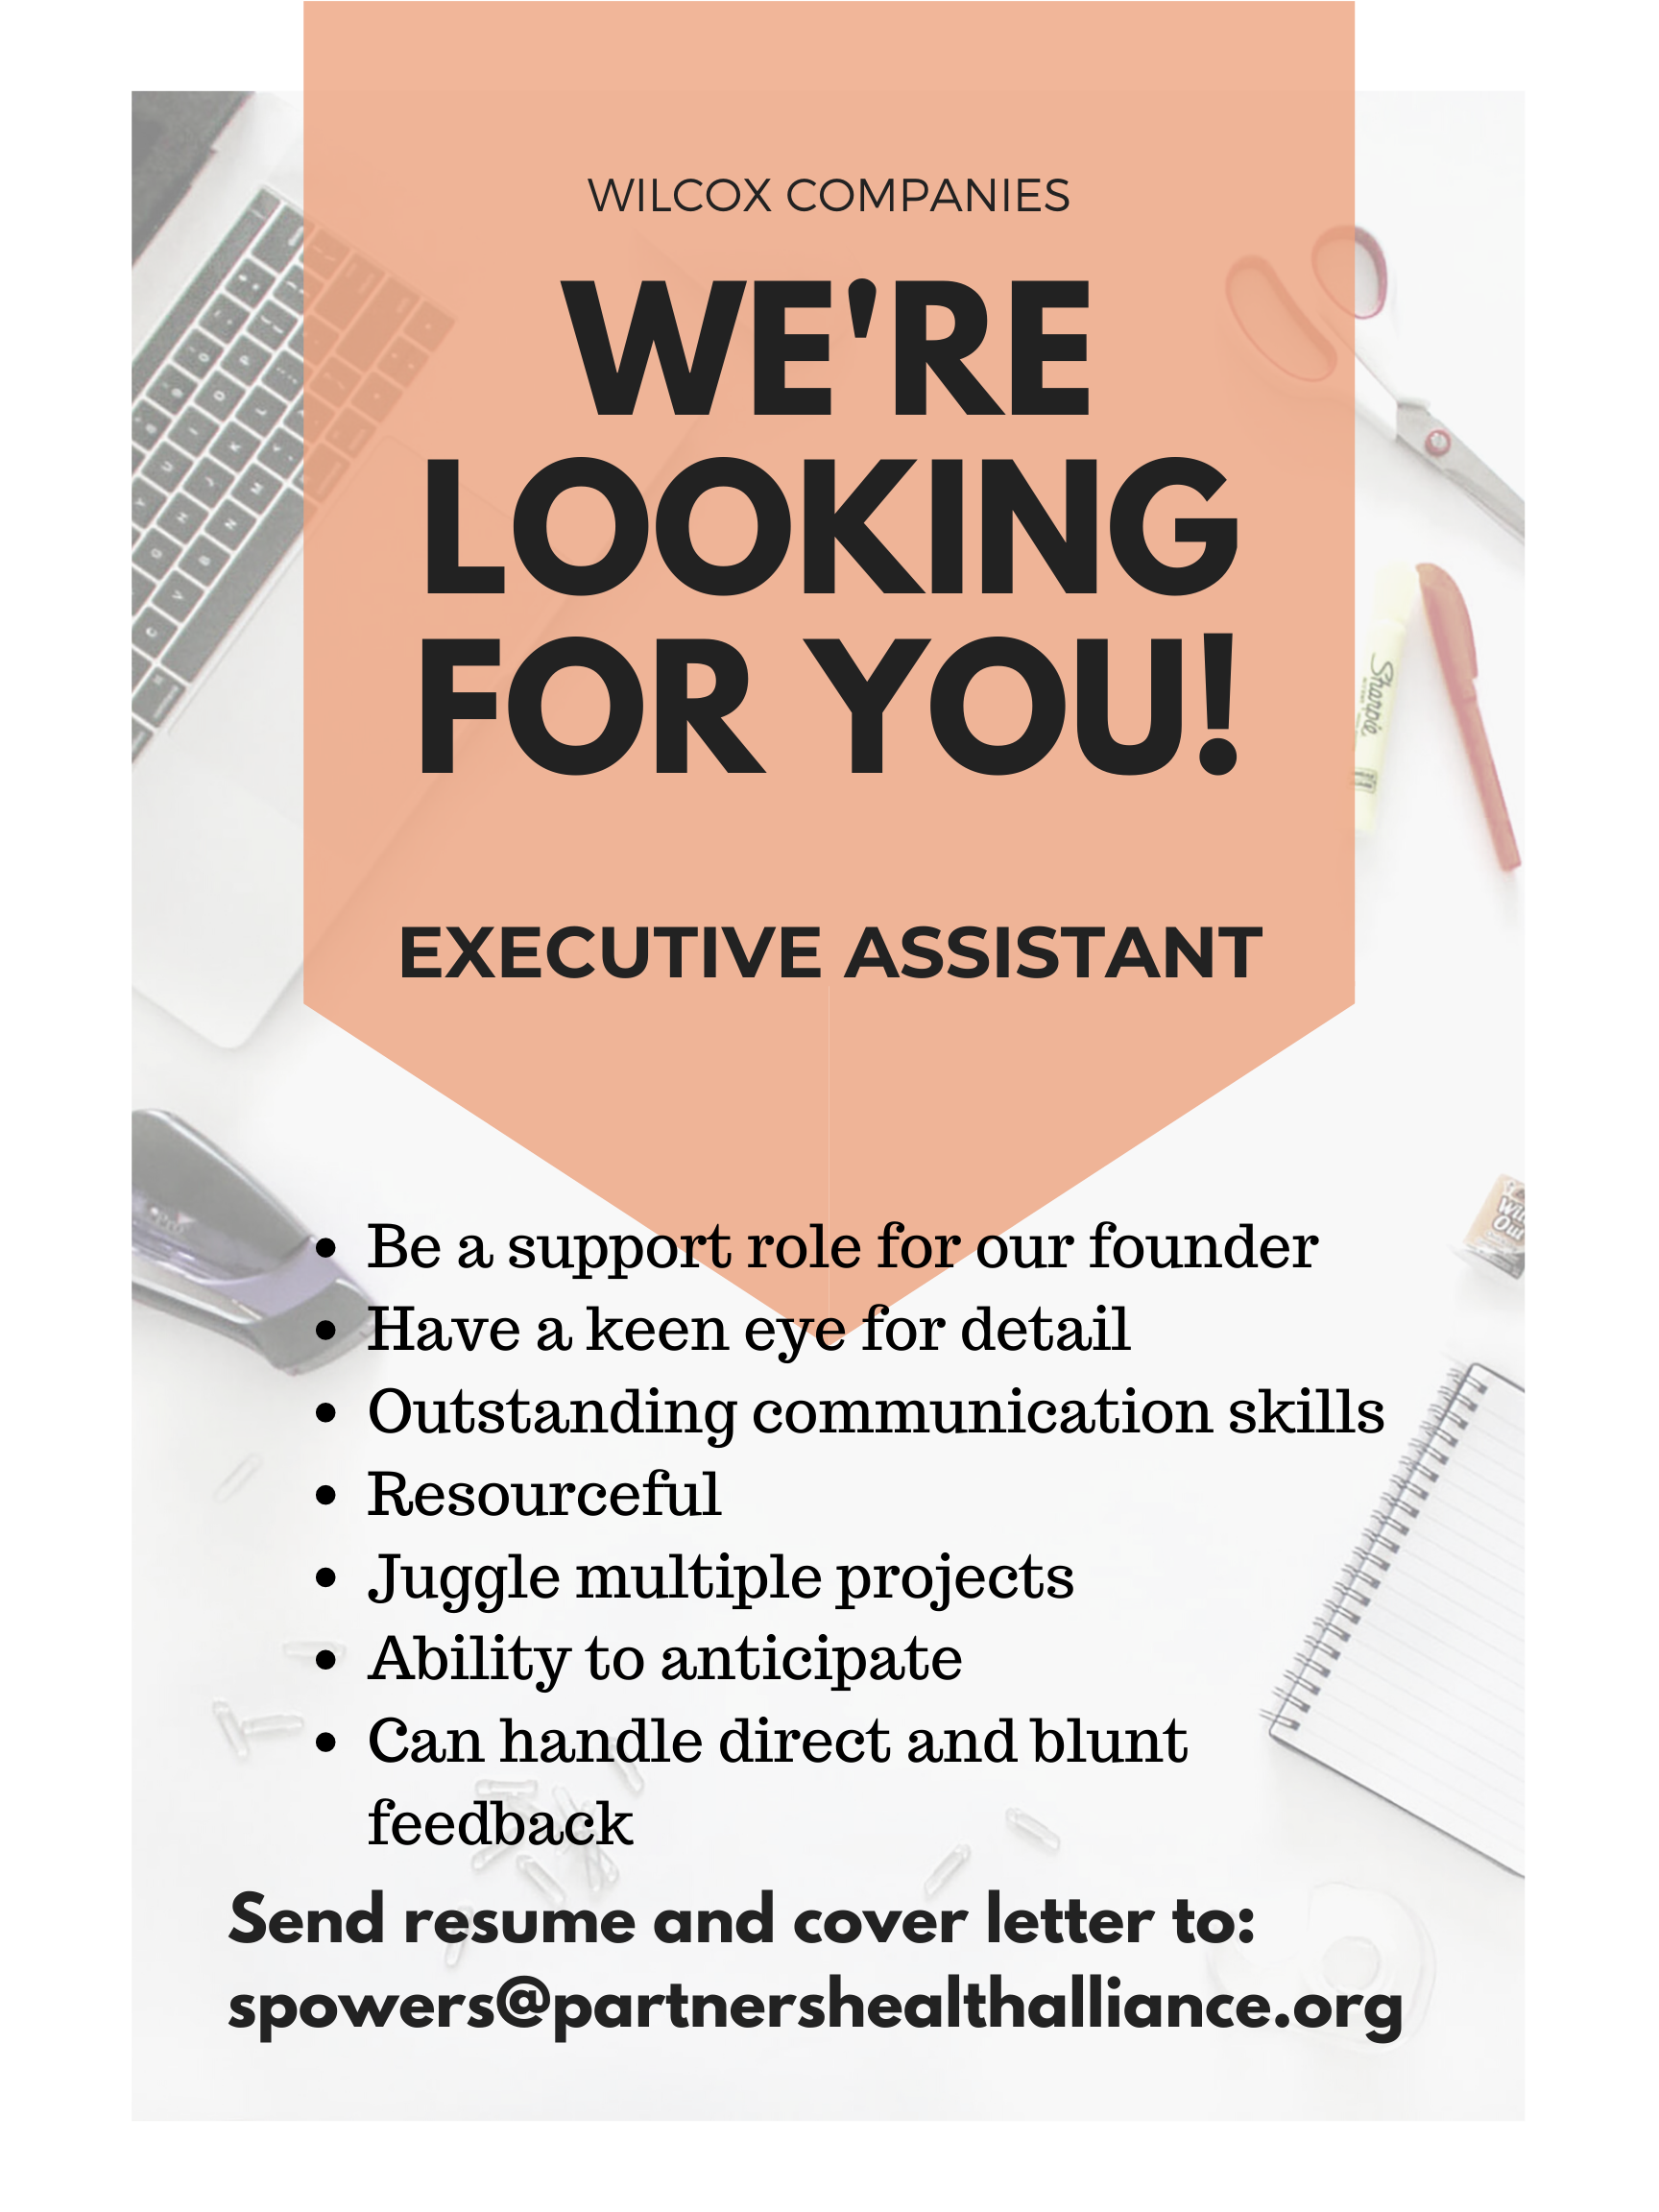 Executive Assistant, Detailed, Great Communicator